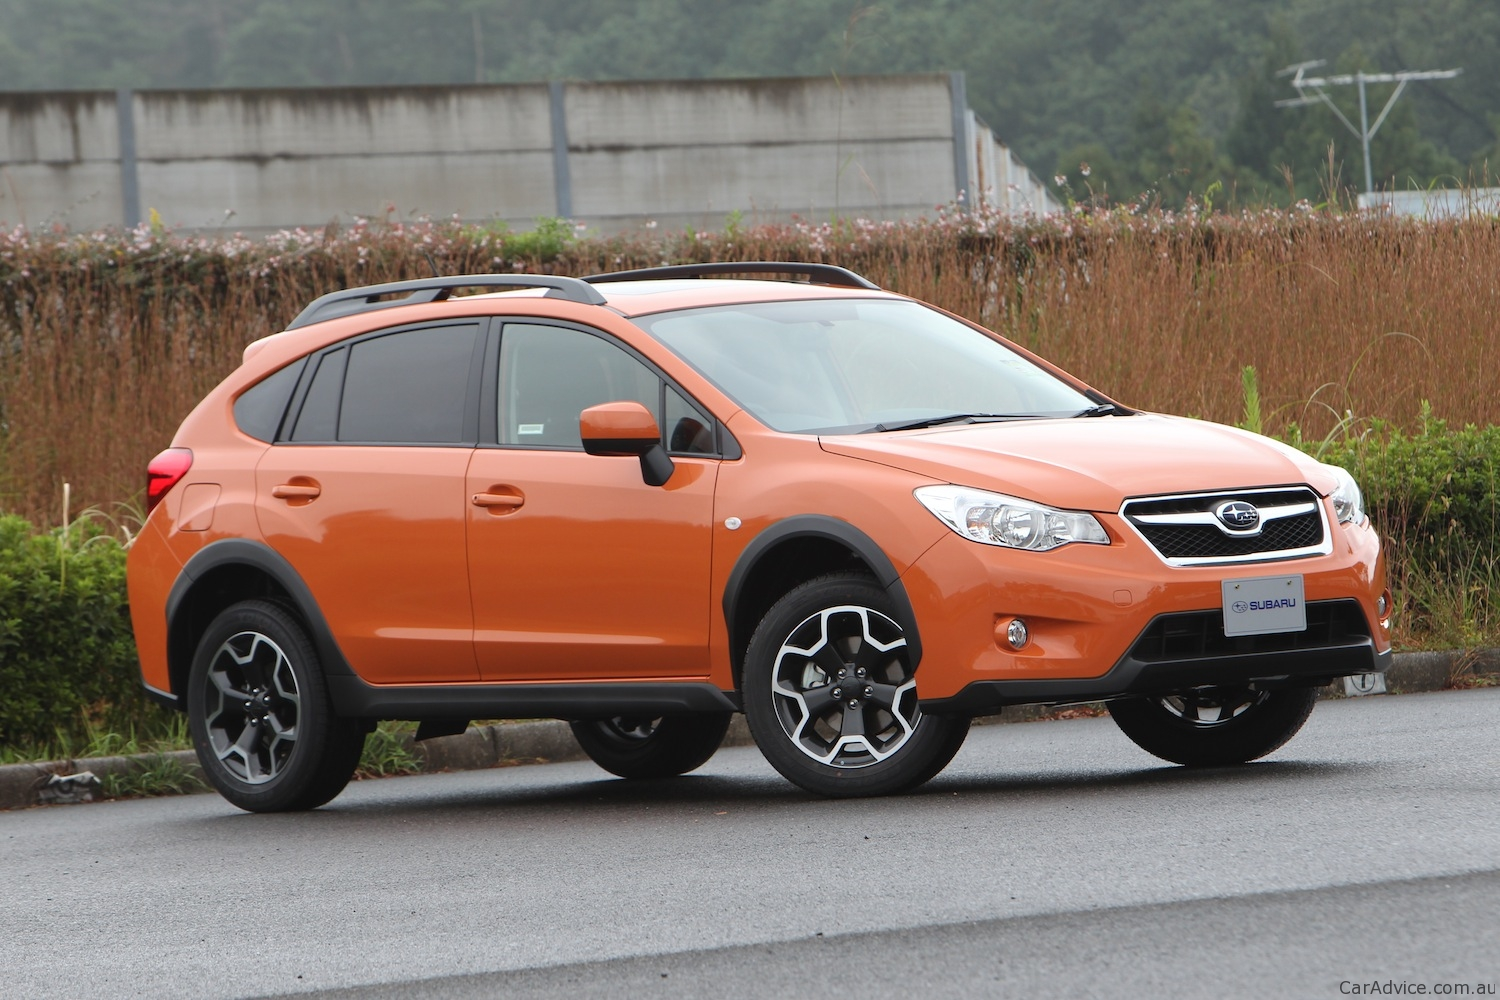 2012 Subaru Xv Review Photos Caradvice